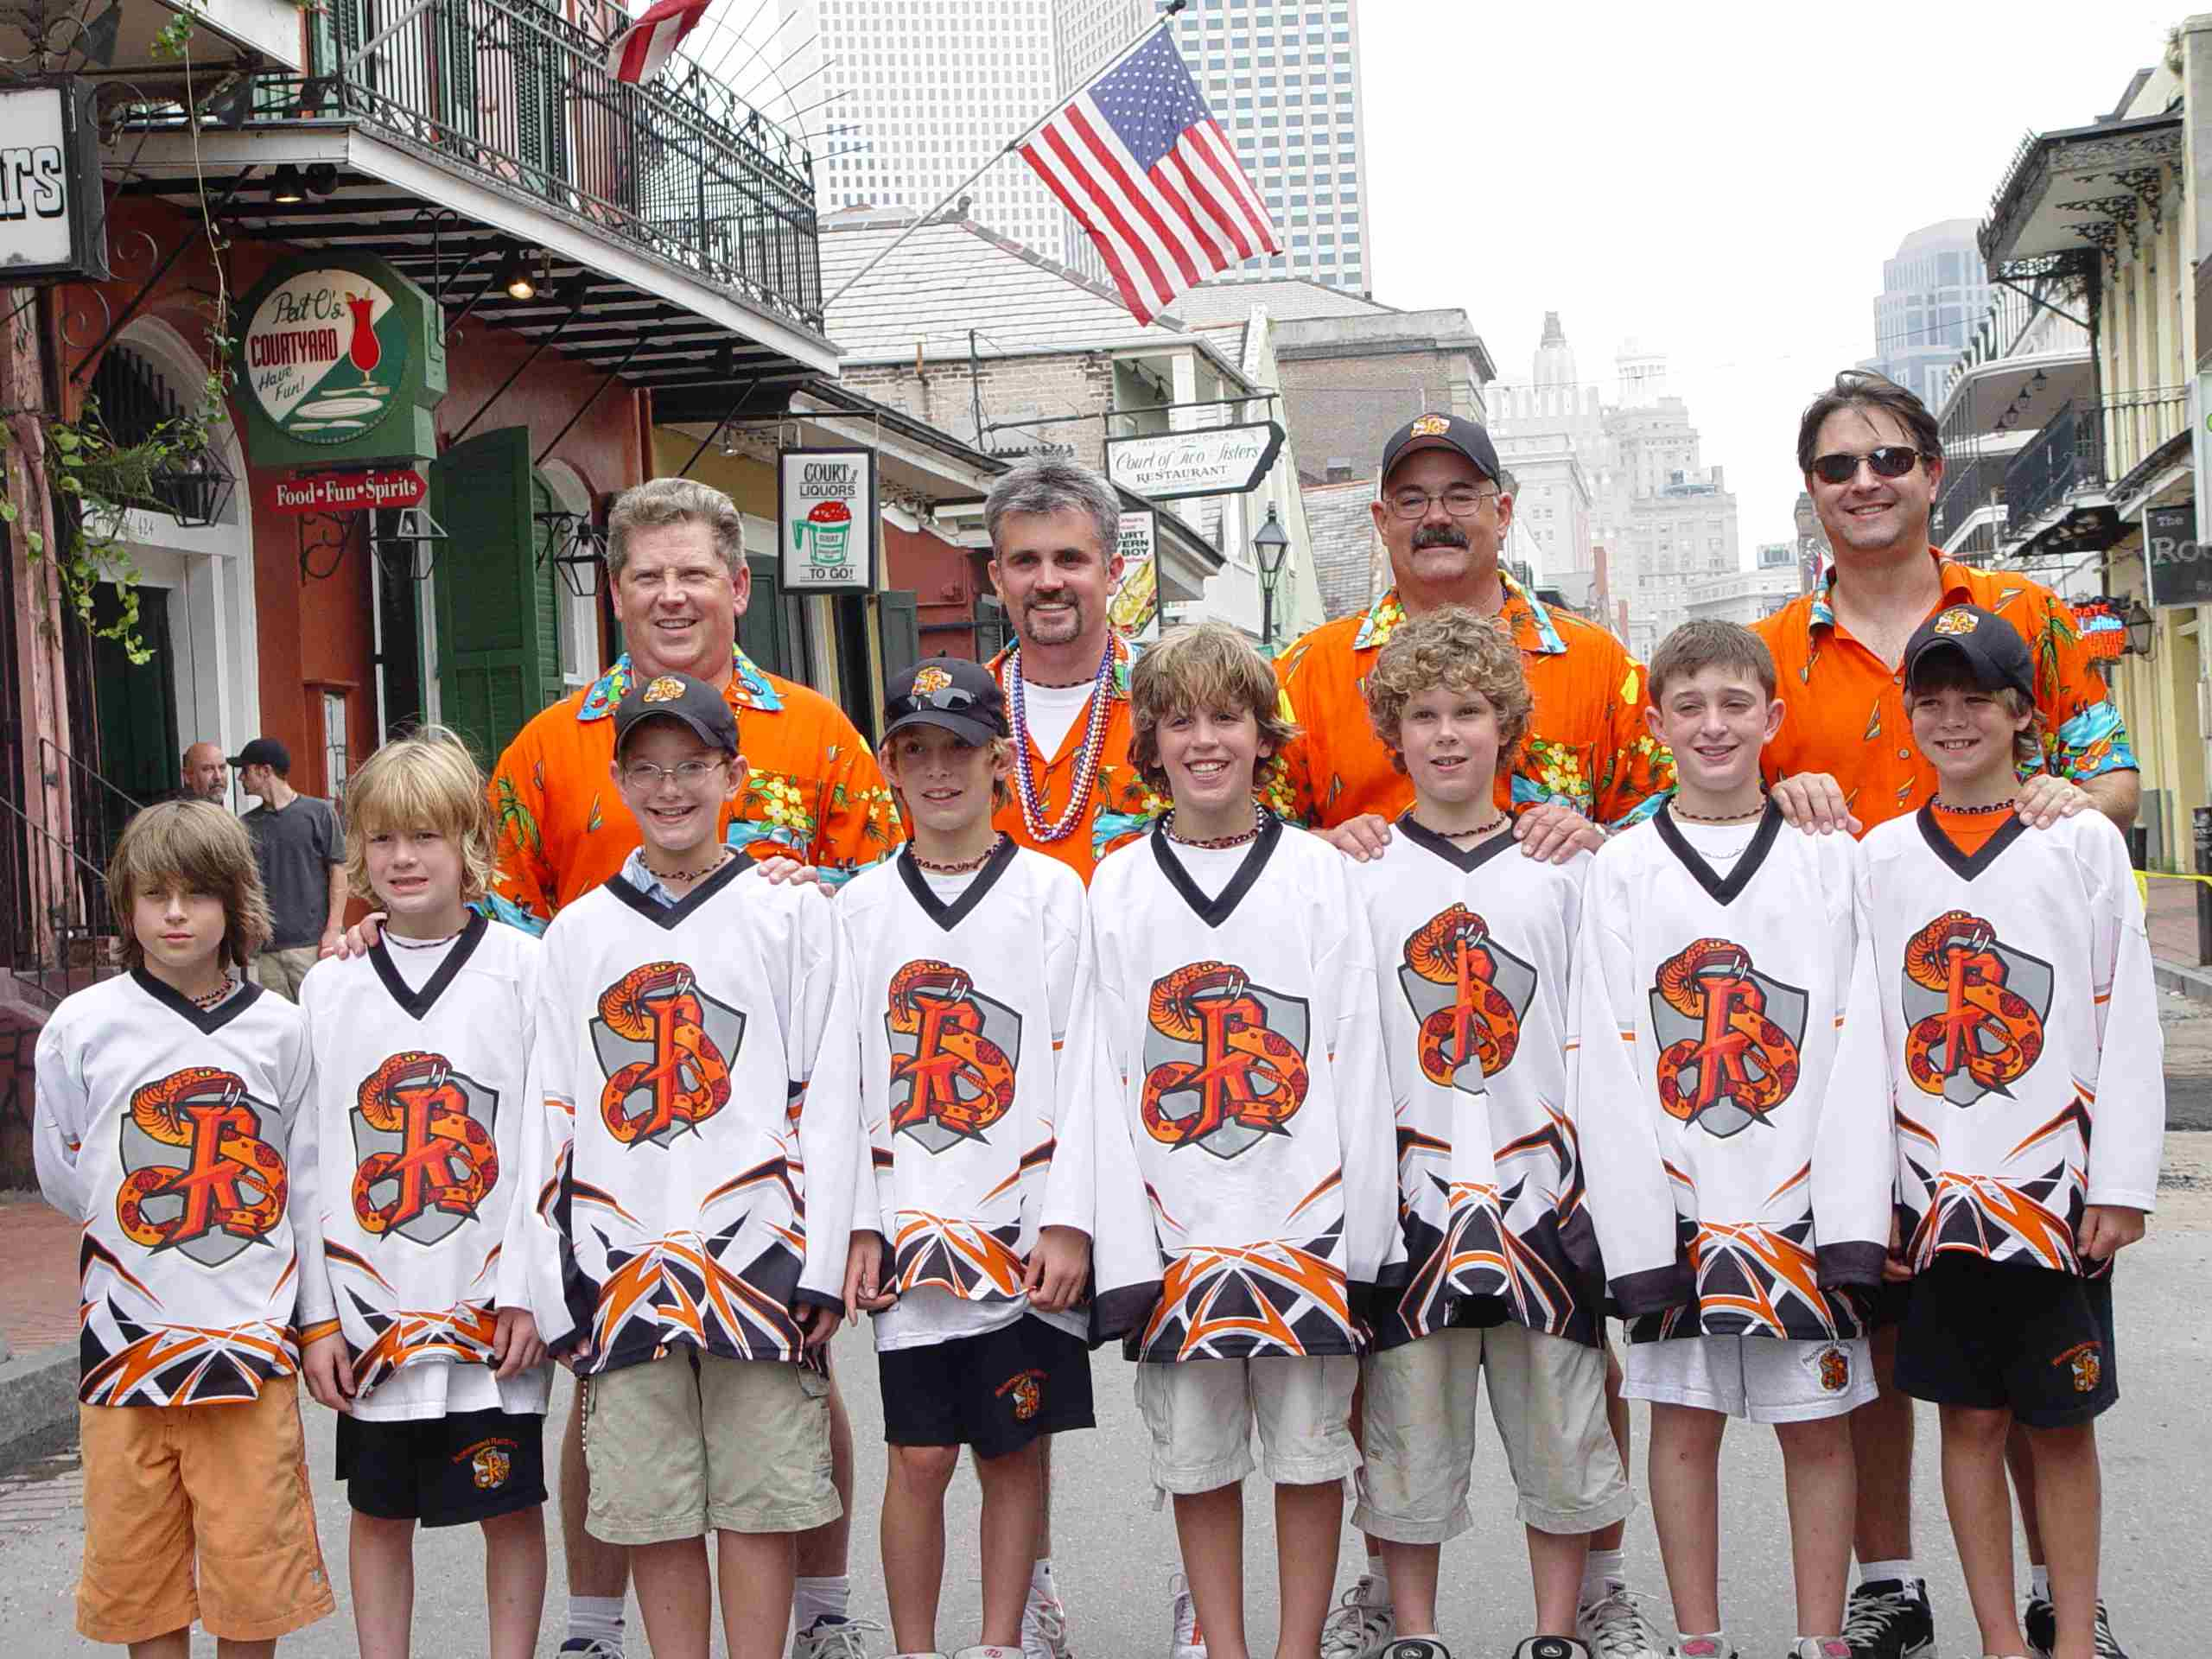 2005 94 in New Orleans